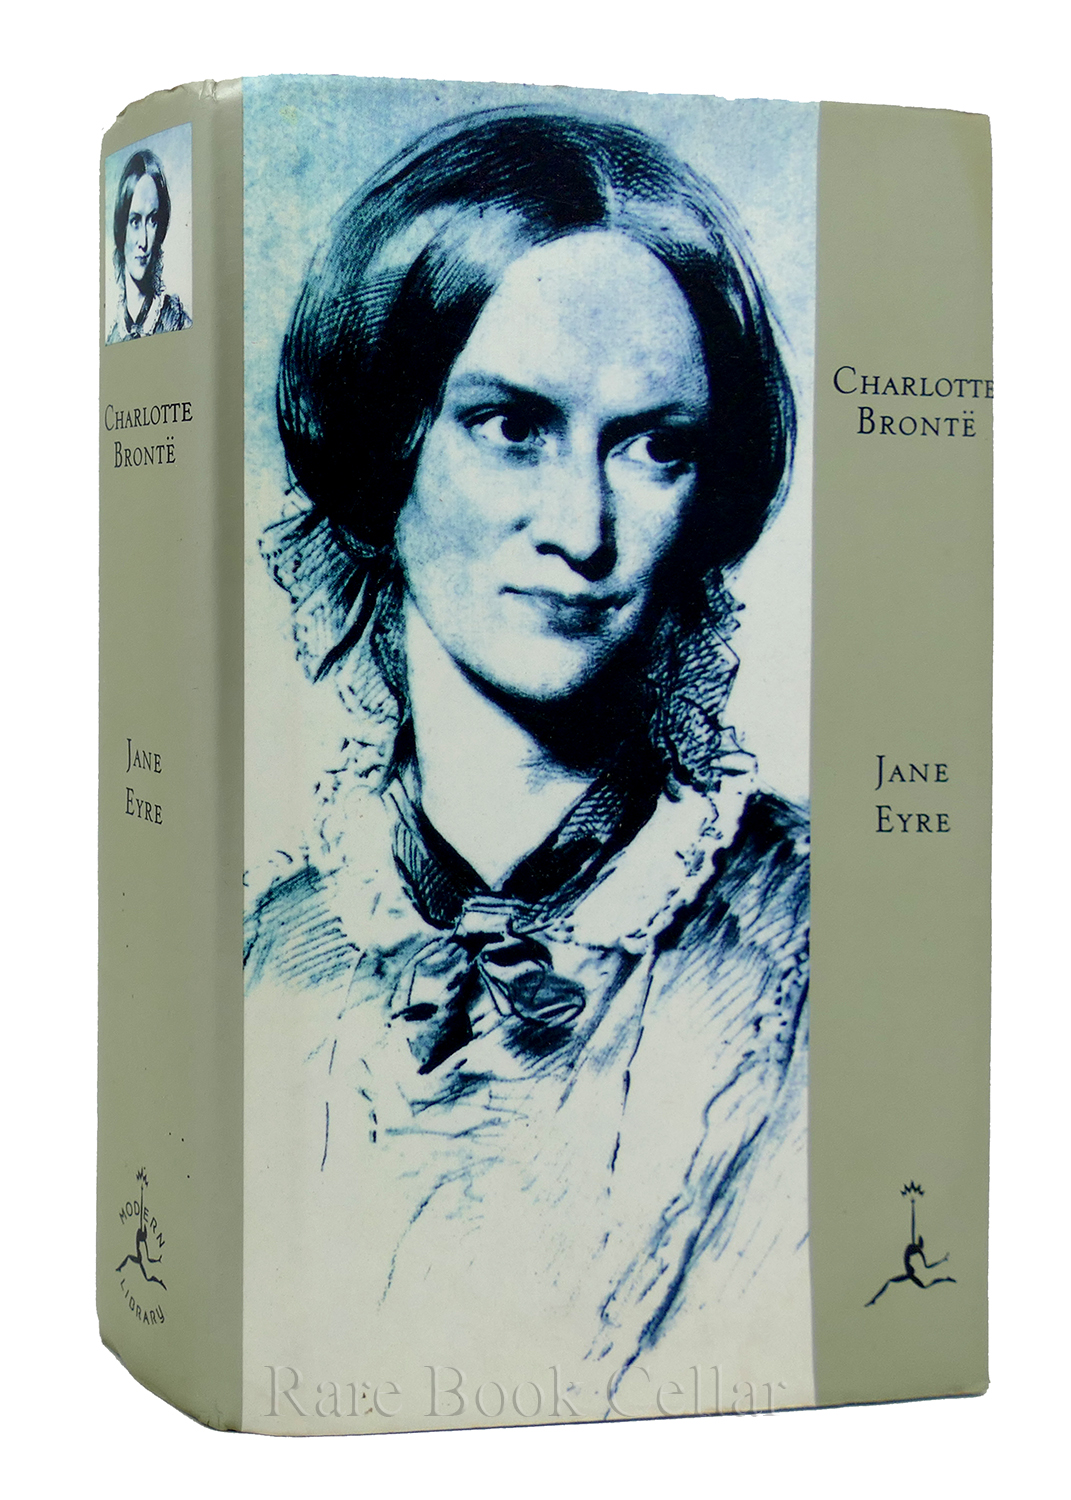 an analysis of difficulties in jane eyre by charlotte bronte Janeeyre is a young poor orphan who is mistreated by her rude aunt reed and cousinsshe is sent off to an orphan school alone miles away from home, after standing up on her auntwhile at lowood, jane's only friend dies of typhus fever that sweeps the school, after several years at lowood six as a student and two as a teacher, jane applies to work as a governess in thornfield.